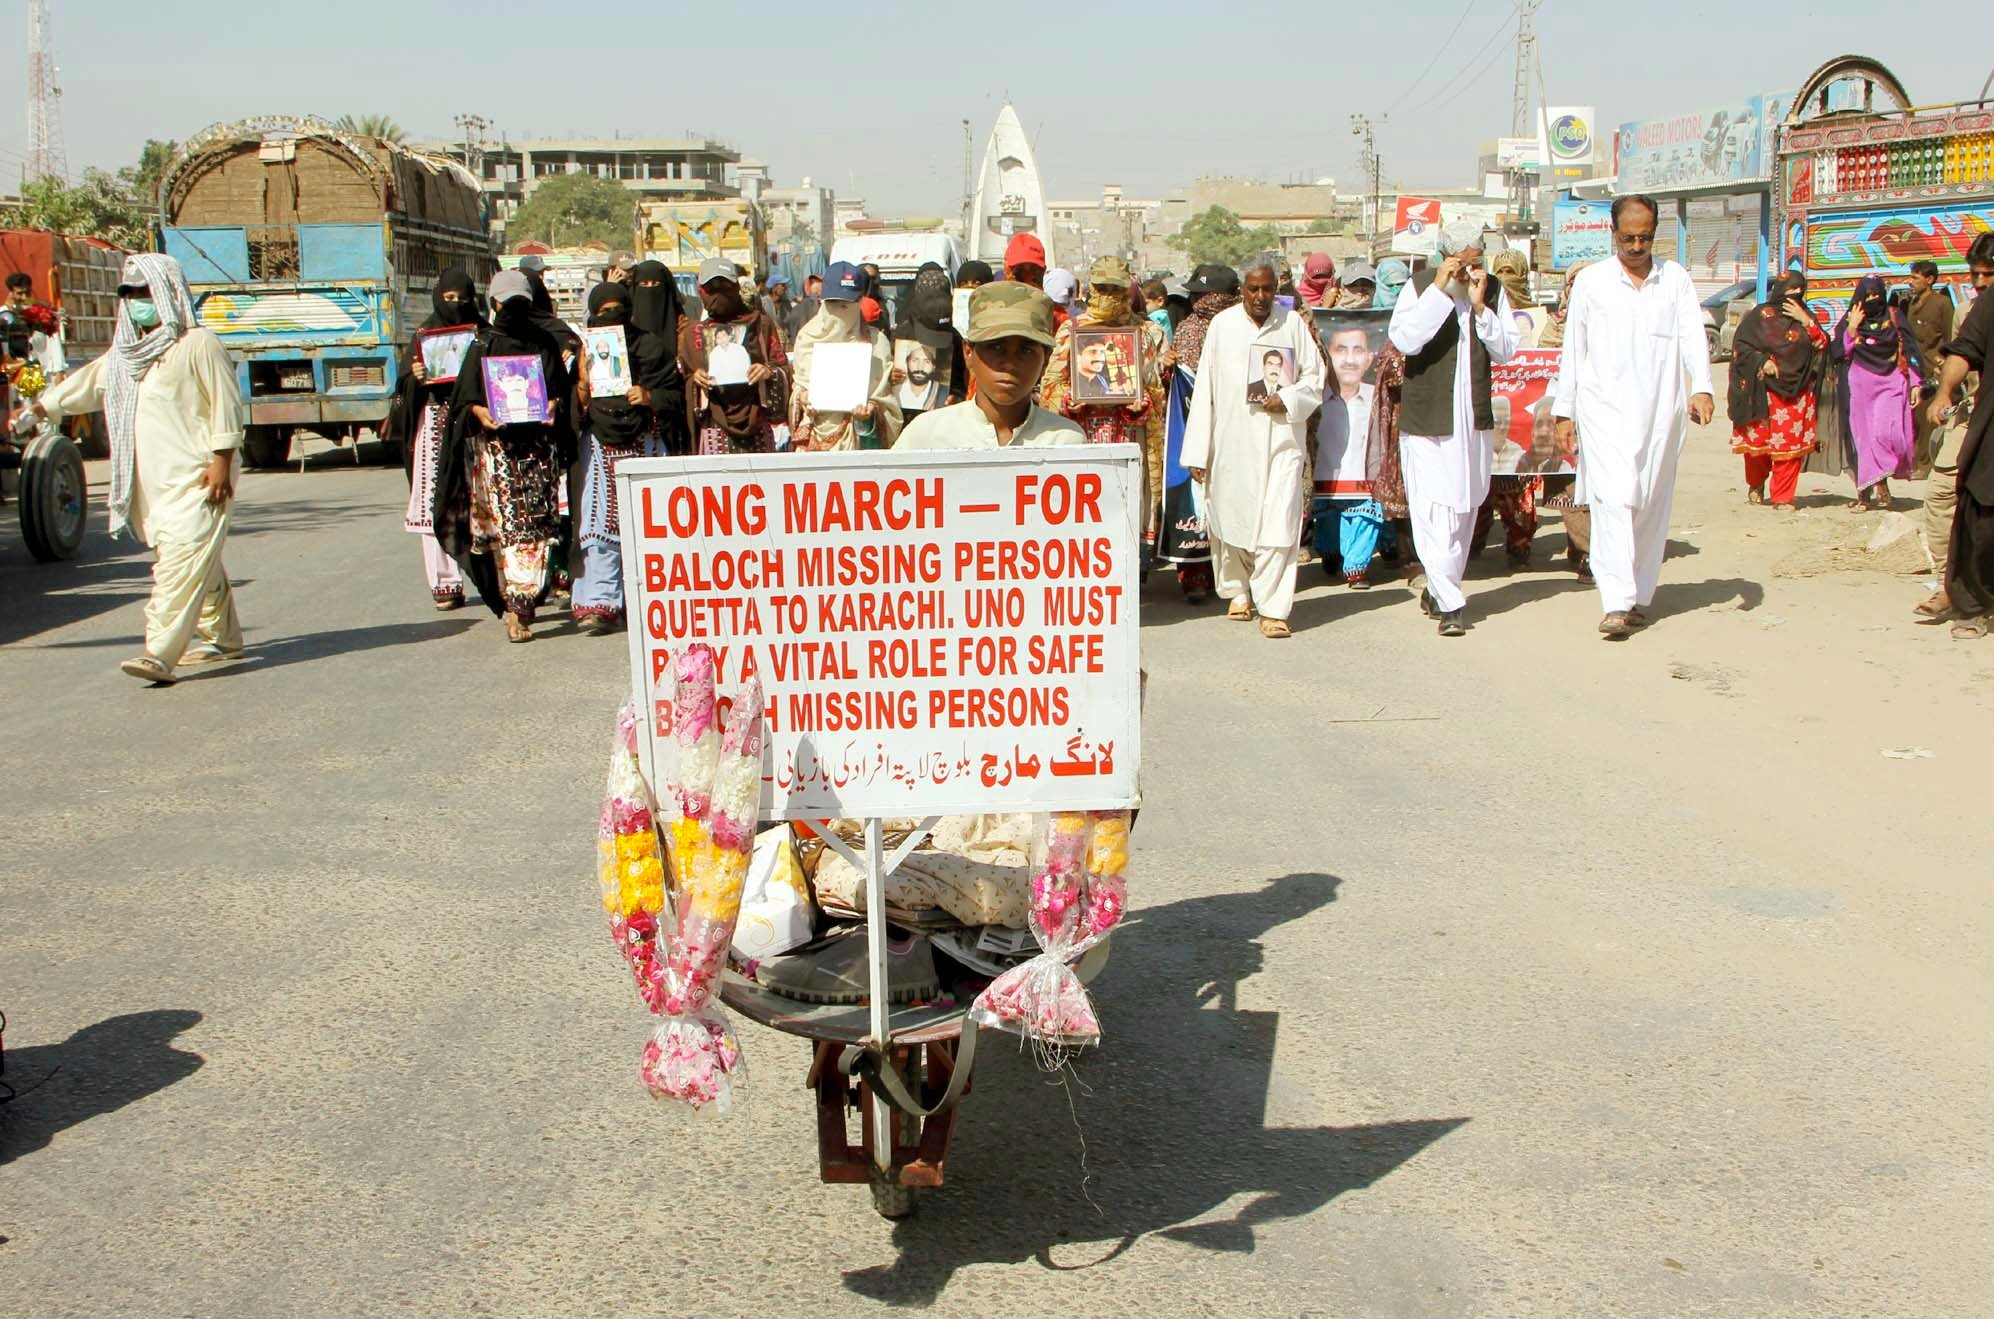 relatives of missing persons pass through a road during long march rally 21 11 2013 photo ppi